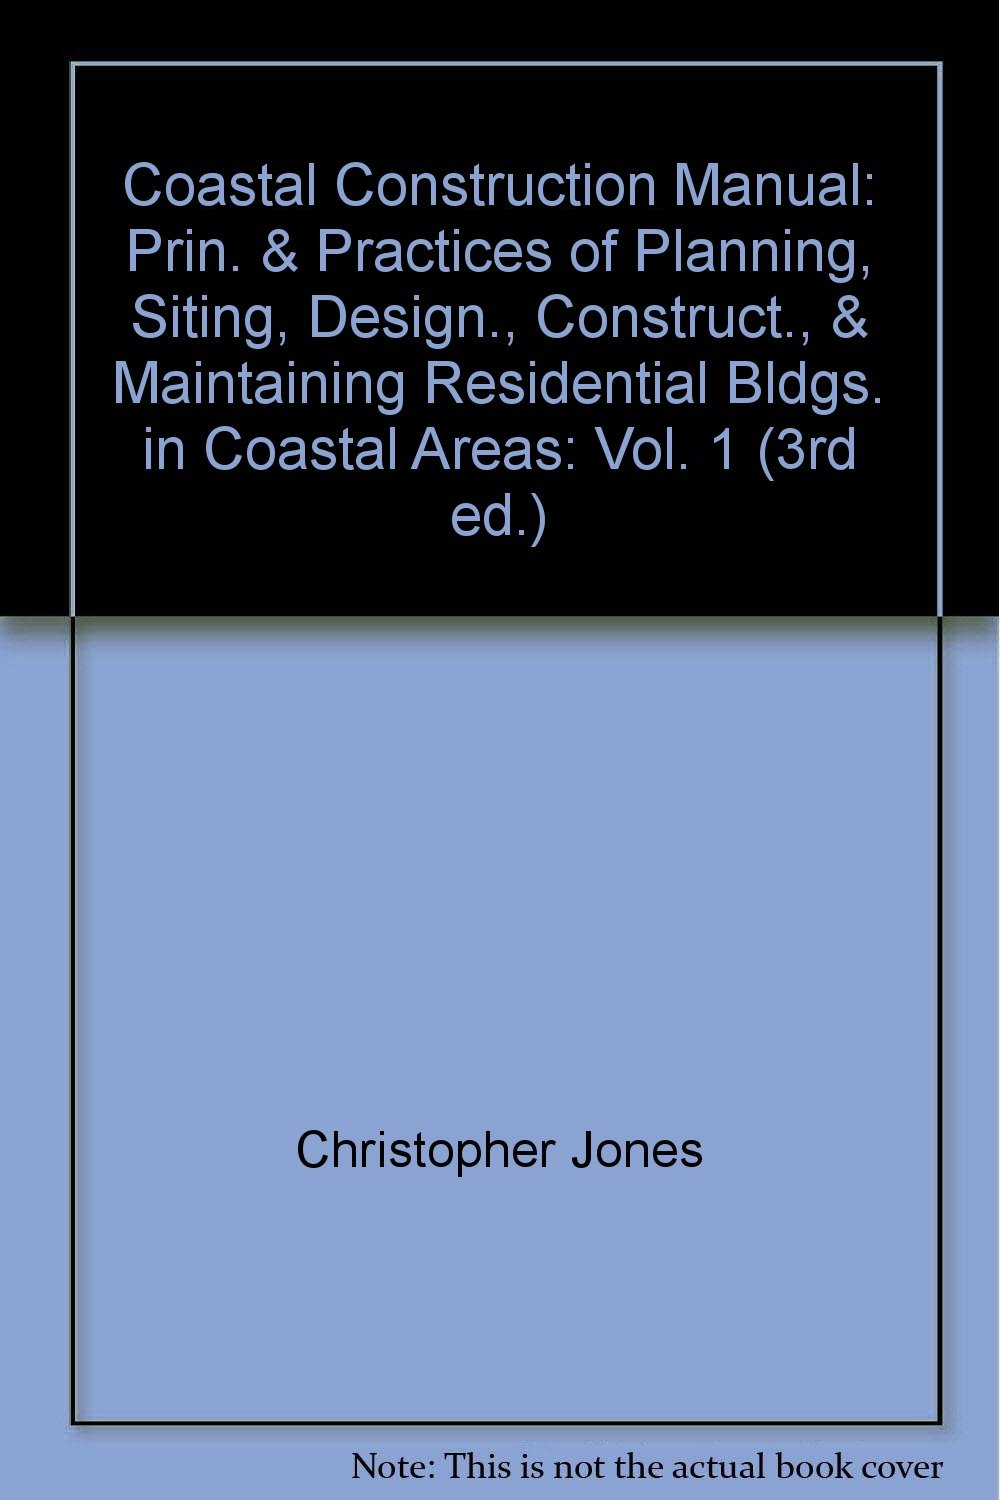 Coastal Construction Manual: Prin. & Practices of Planning, Siting, Design., Construct., & Maintaining Residential Bldgs. in Coastal Areas: Vol. 1 (3rd ed.)